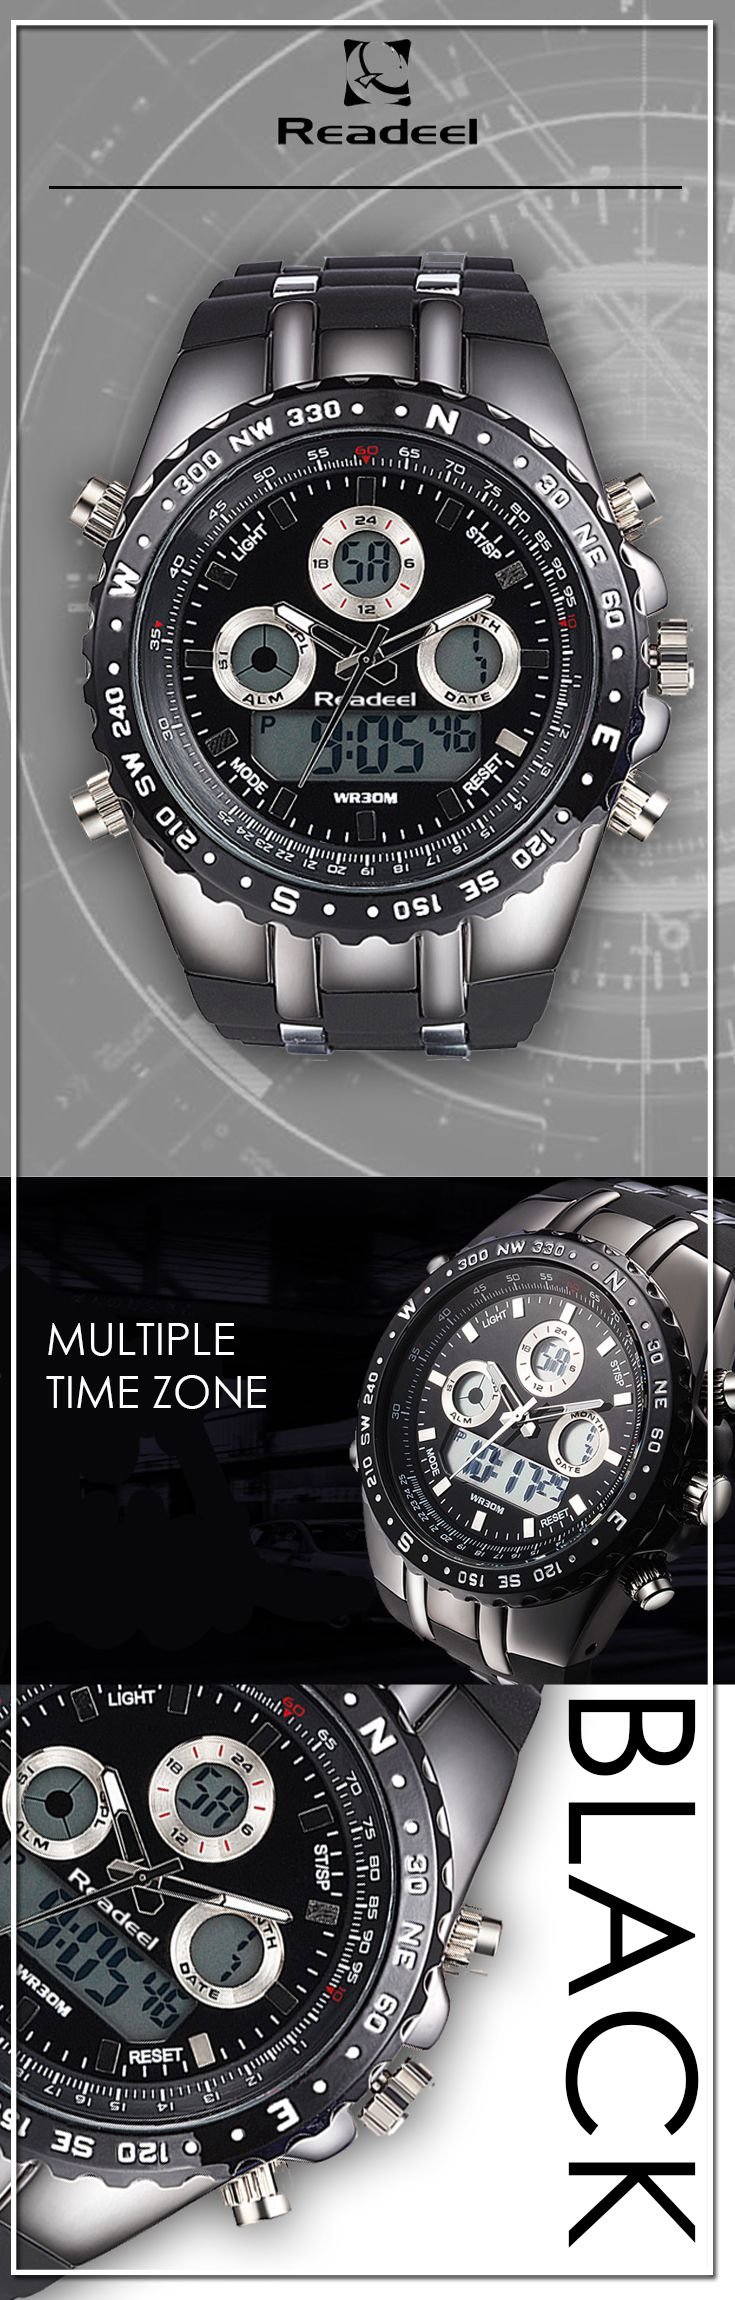 Men's Black Military LED quartz watches - Readeel luxury sport timepiece watch - Men's wear brand style fashion affordable accessories #menswatches #watches #mensstyle #mensaccessories #menstyle